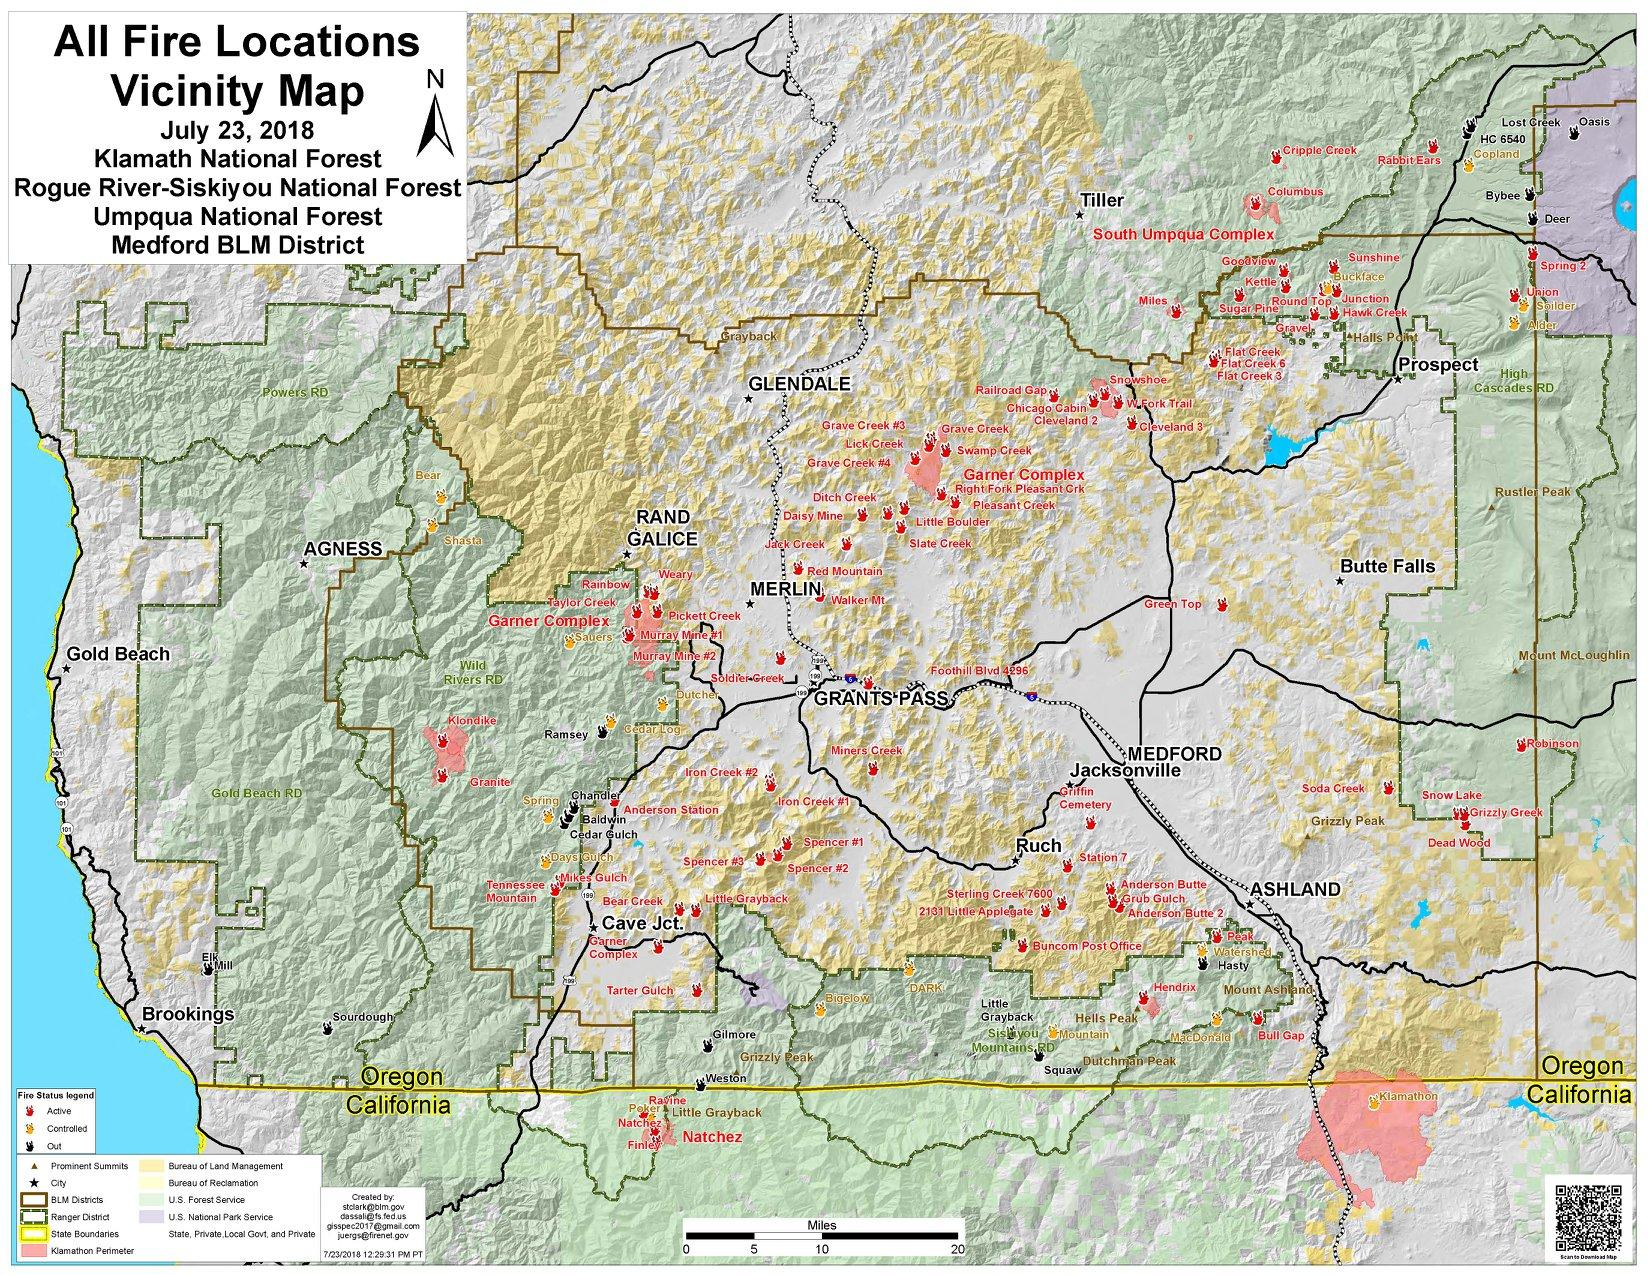 Oregon Forest Fires Map Worth A Thousand Words Or More: Southern Oregon Fire Map  Oregon Forest Fires Map